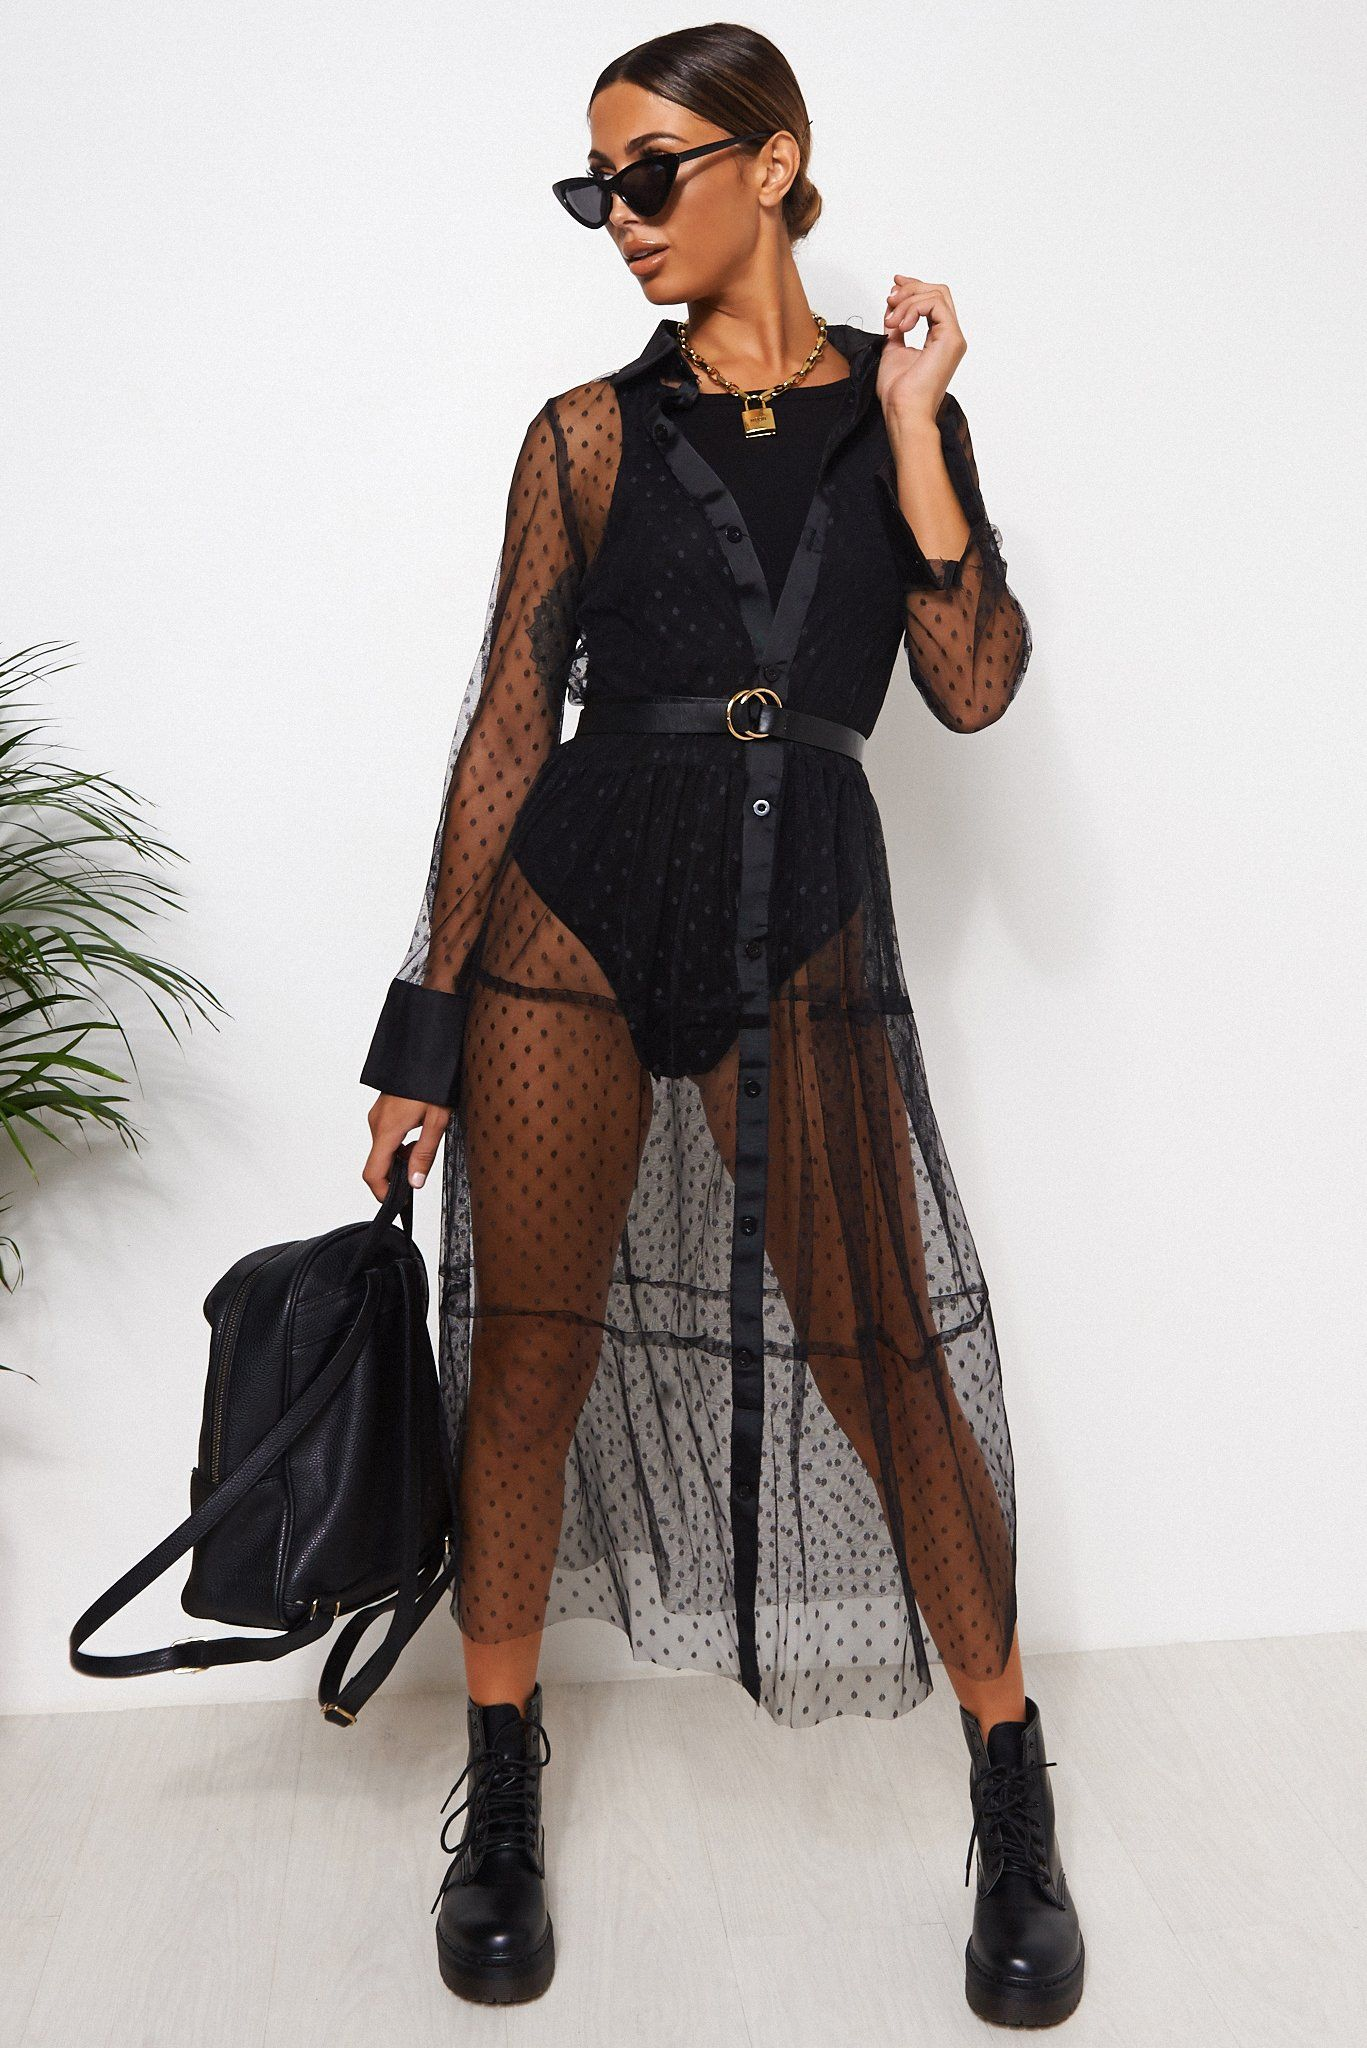 Black Mesh Polka Dot Shirt Dress Black - 6-8